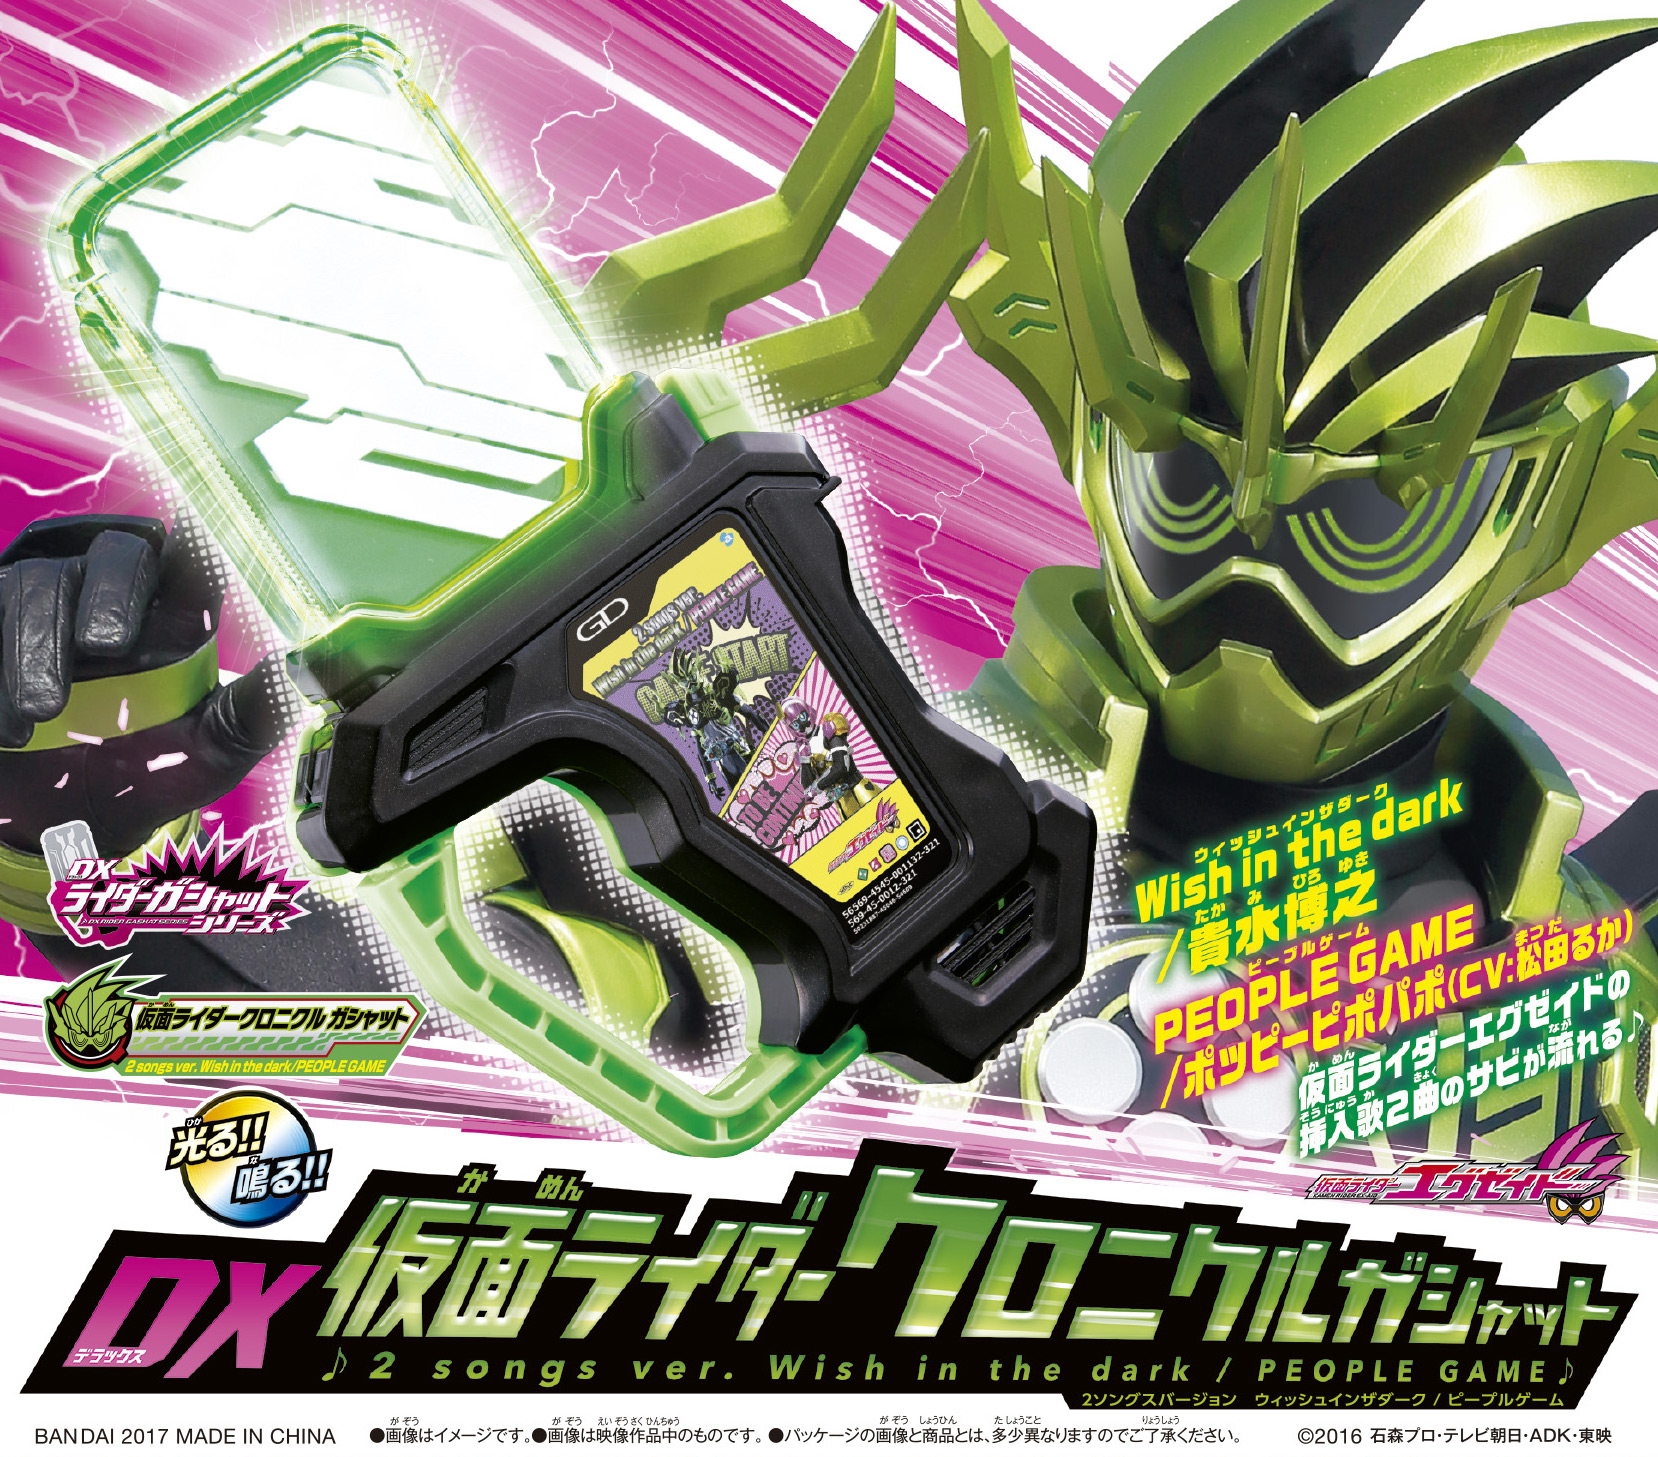 topics_gashat_krchronicle_0502